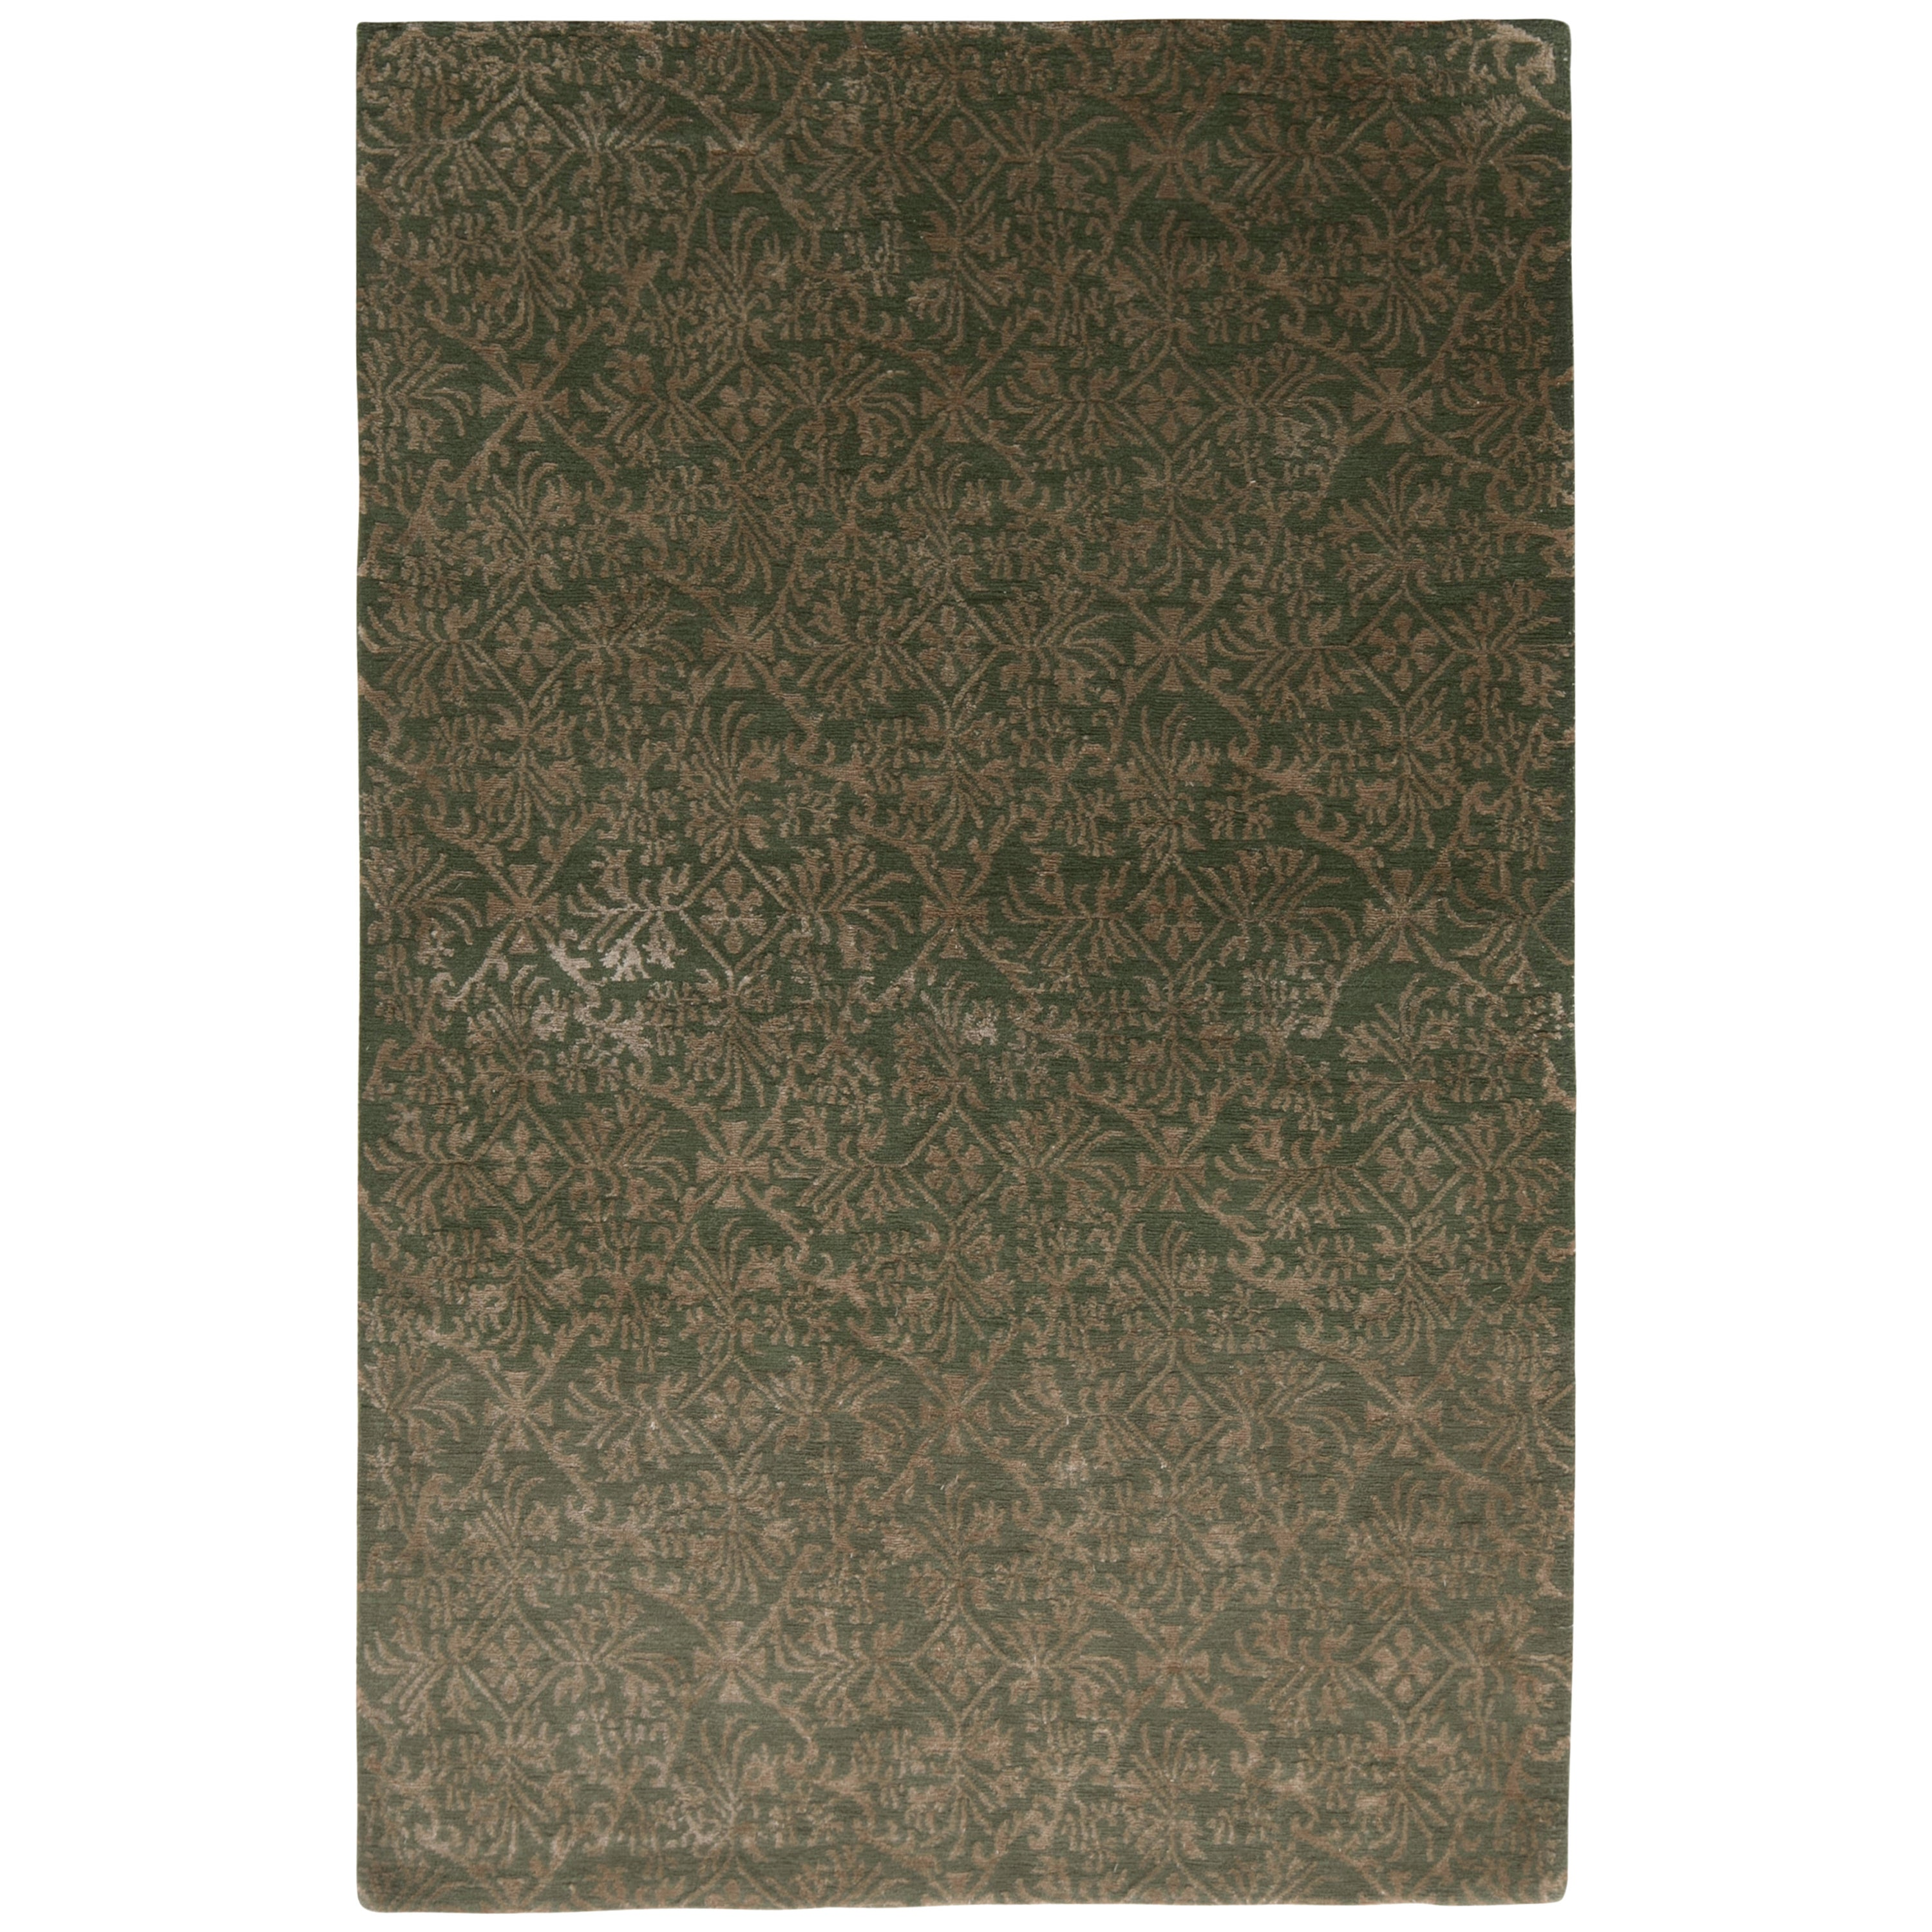 Hand Knotted European Style Rug Beige-Brown Green Floral Pattern by Rug & Kilim